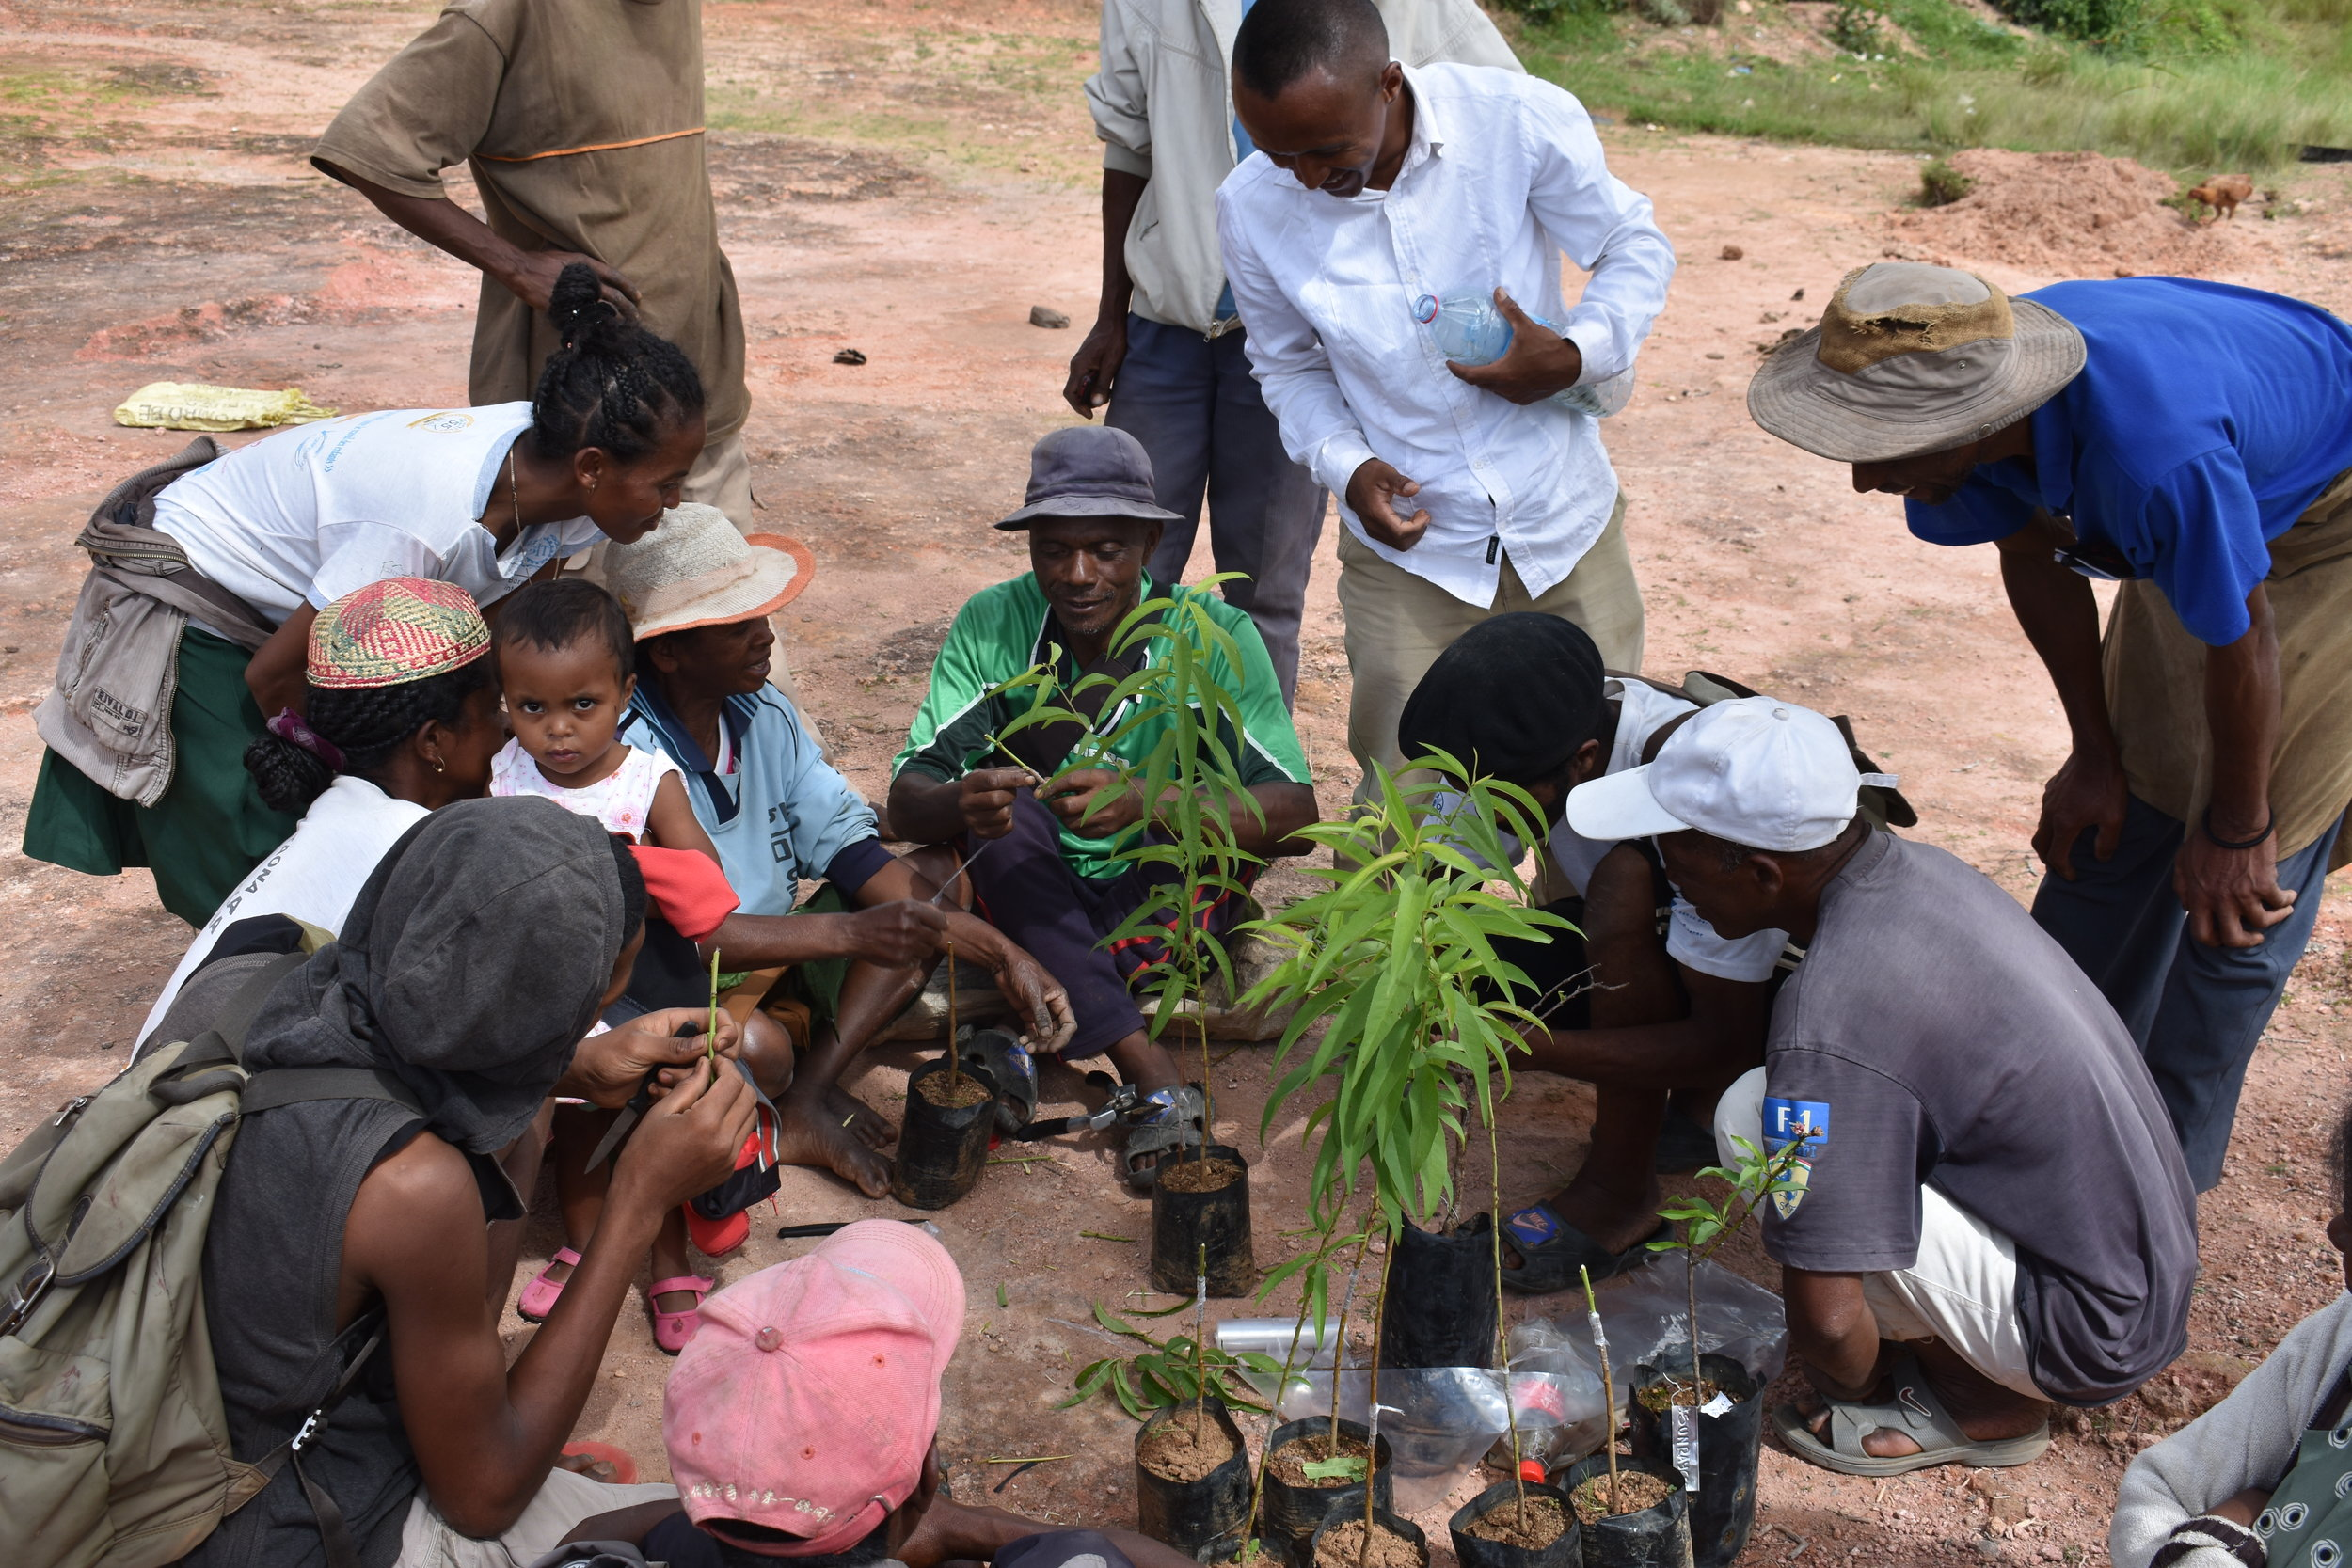 Germain Andrianaivoson (with bottle) helping trainees practice grafting peaches and nectarines